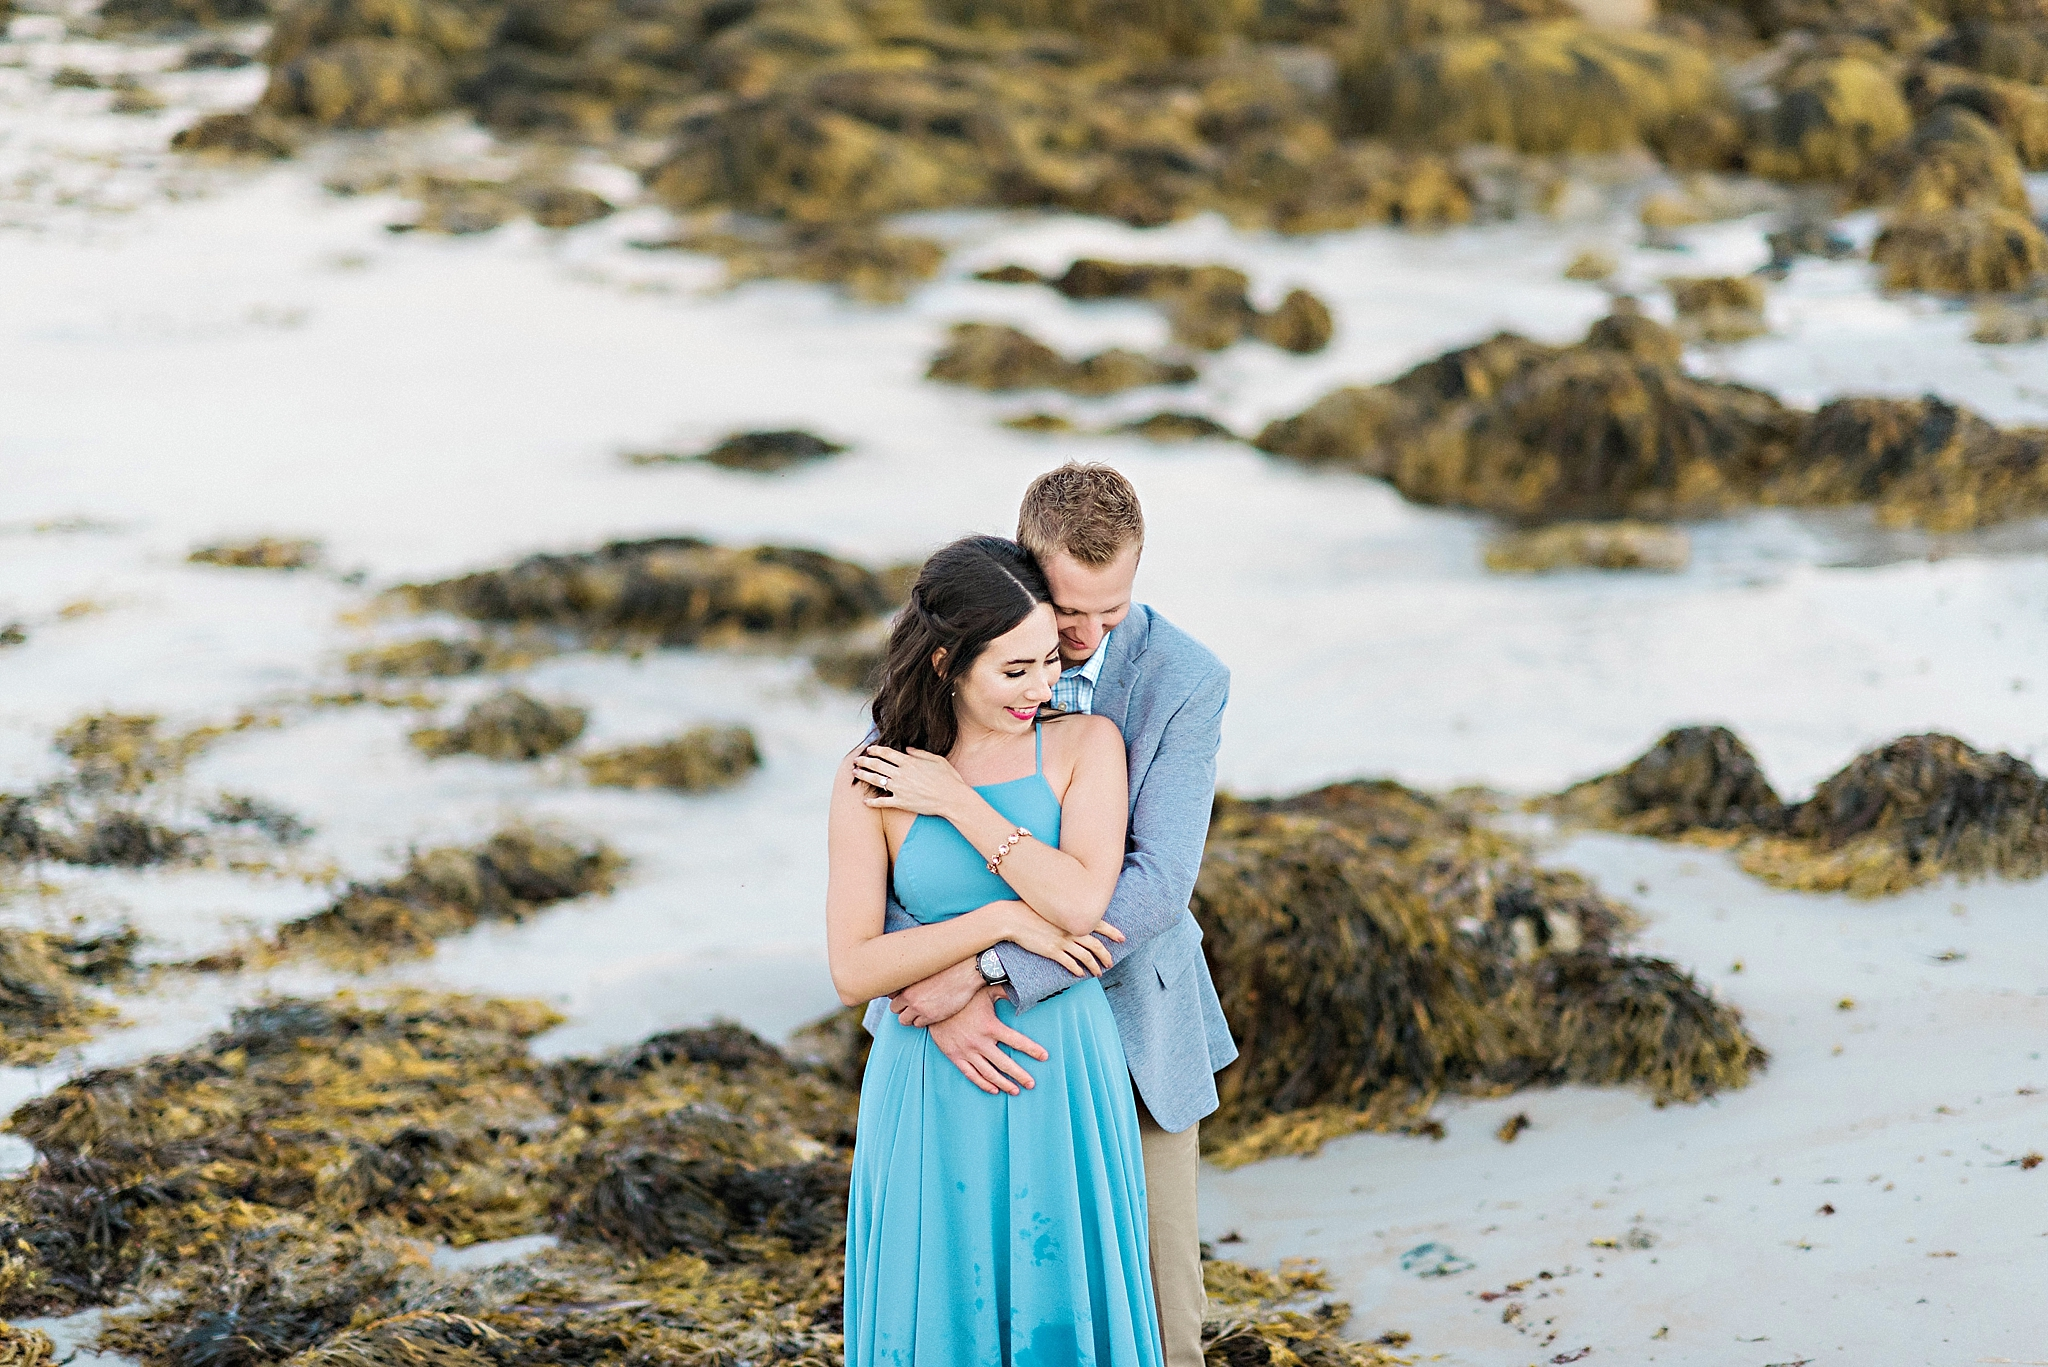 Romantic Seaside Beach Engagement Shoot in Lulu's long flowy maxy dress_041.jpg